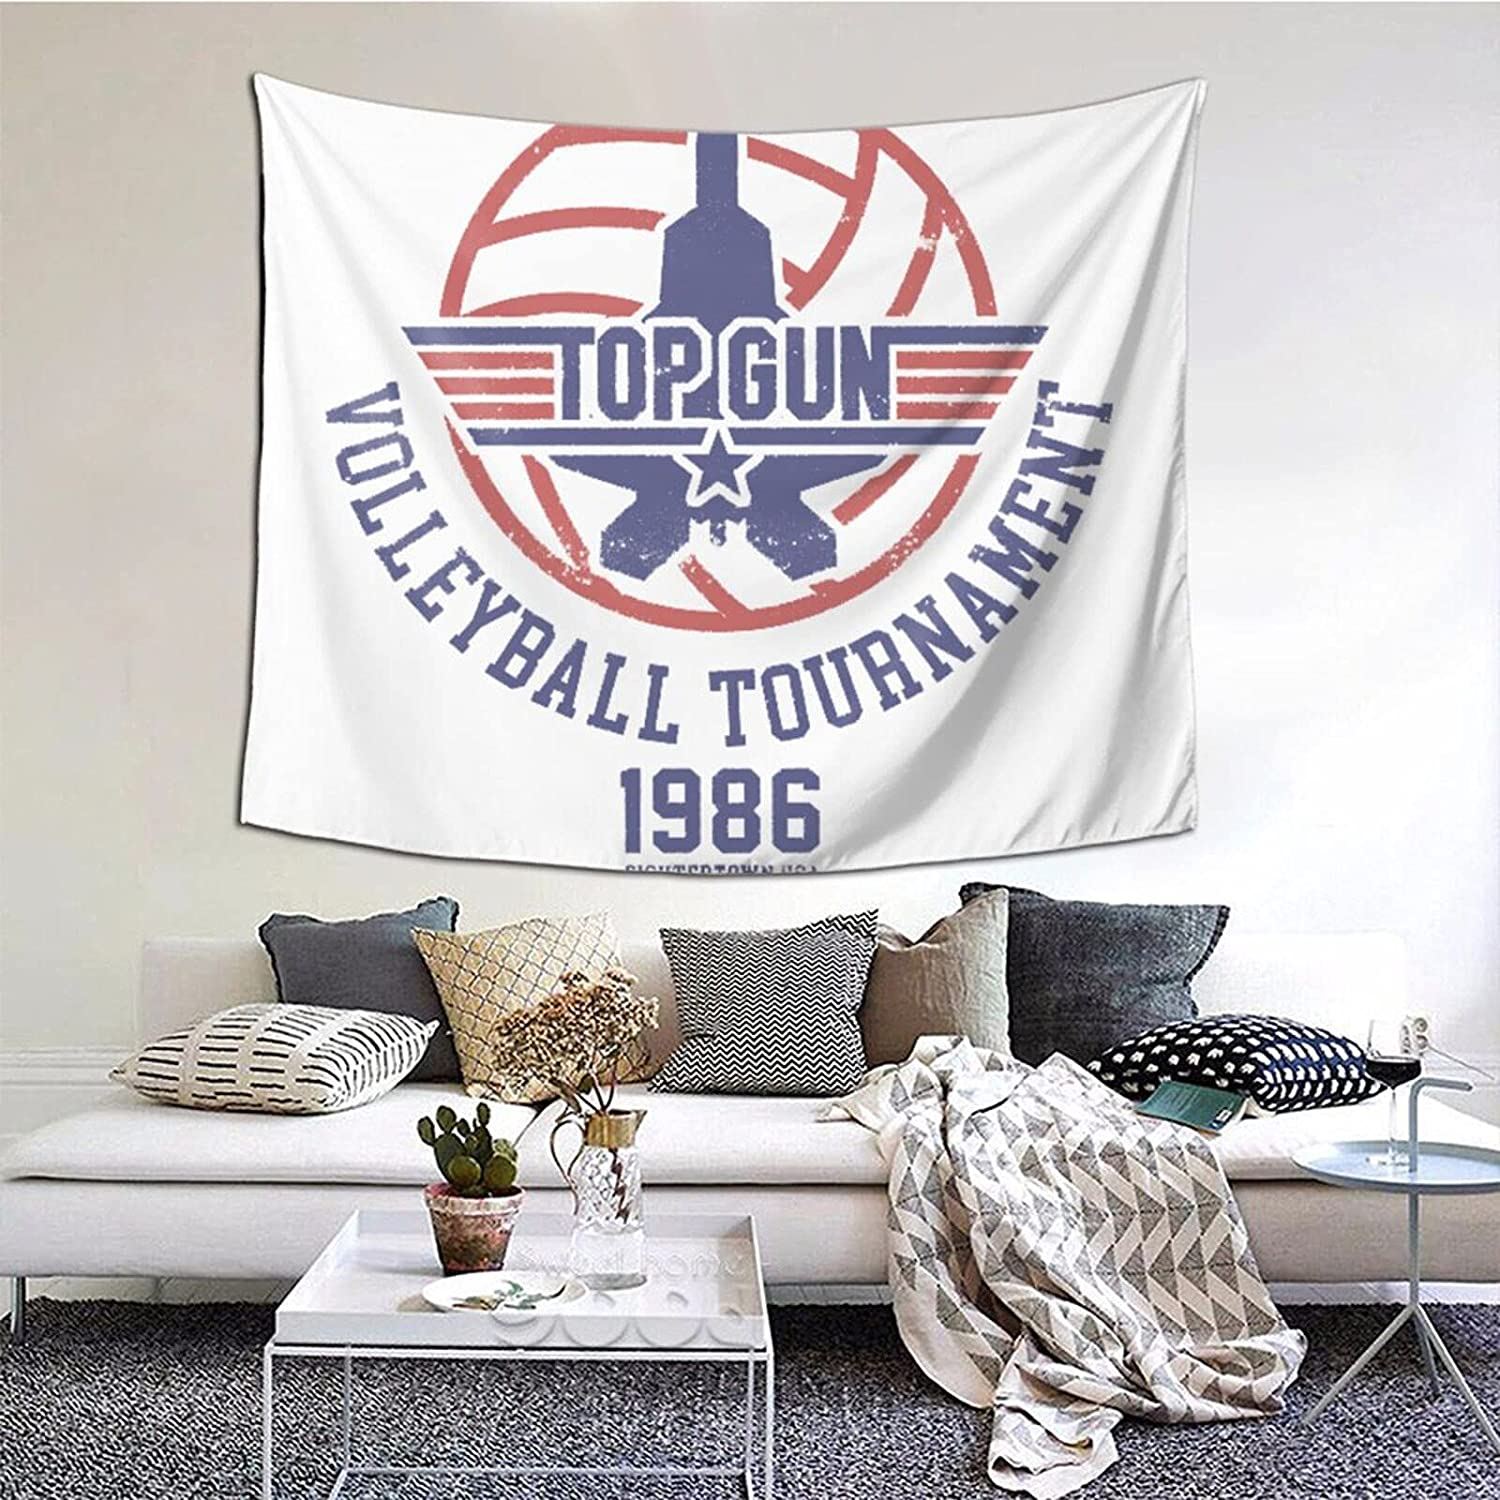 Classic Top Gun Volleyball Tournament Tapestries With Art Nature Home Stylish Wall Hangings Tapestry Bedroom Party Decor (60 X 51 Inch)